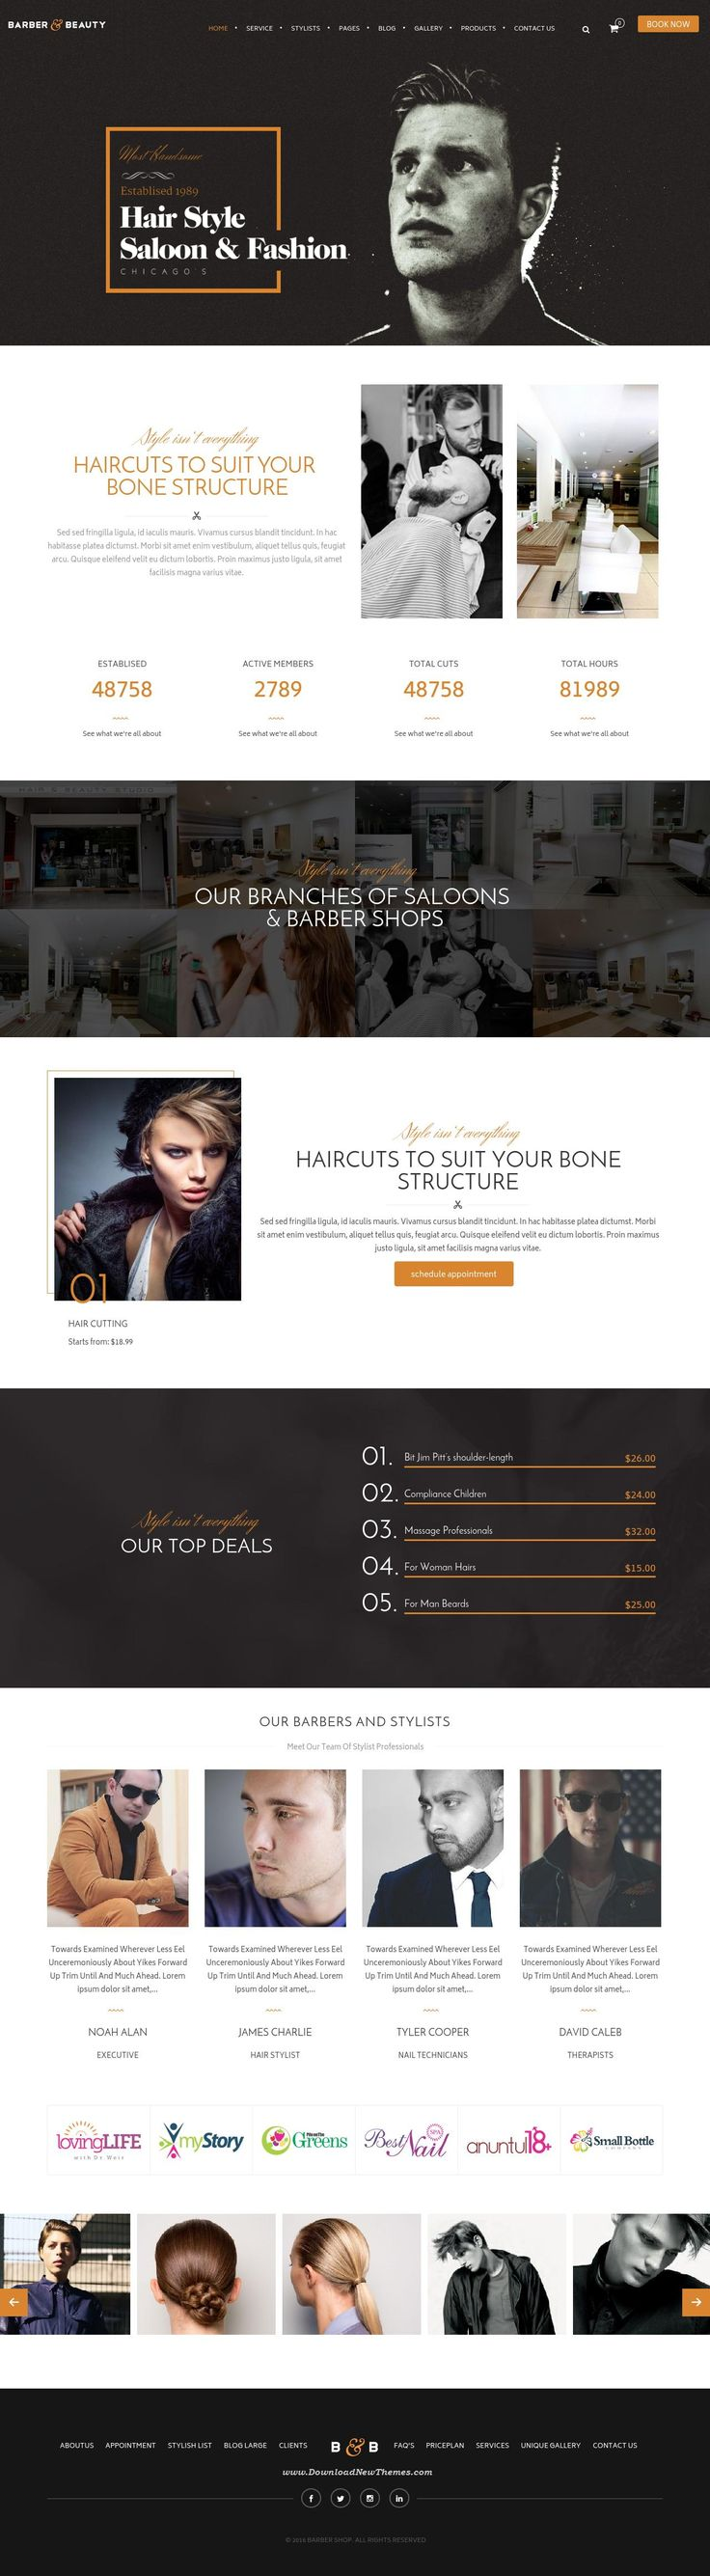 HairLoom Responsive WordPress Theme for Barbers & Hair Salons Website #hairstyle #templates #barber